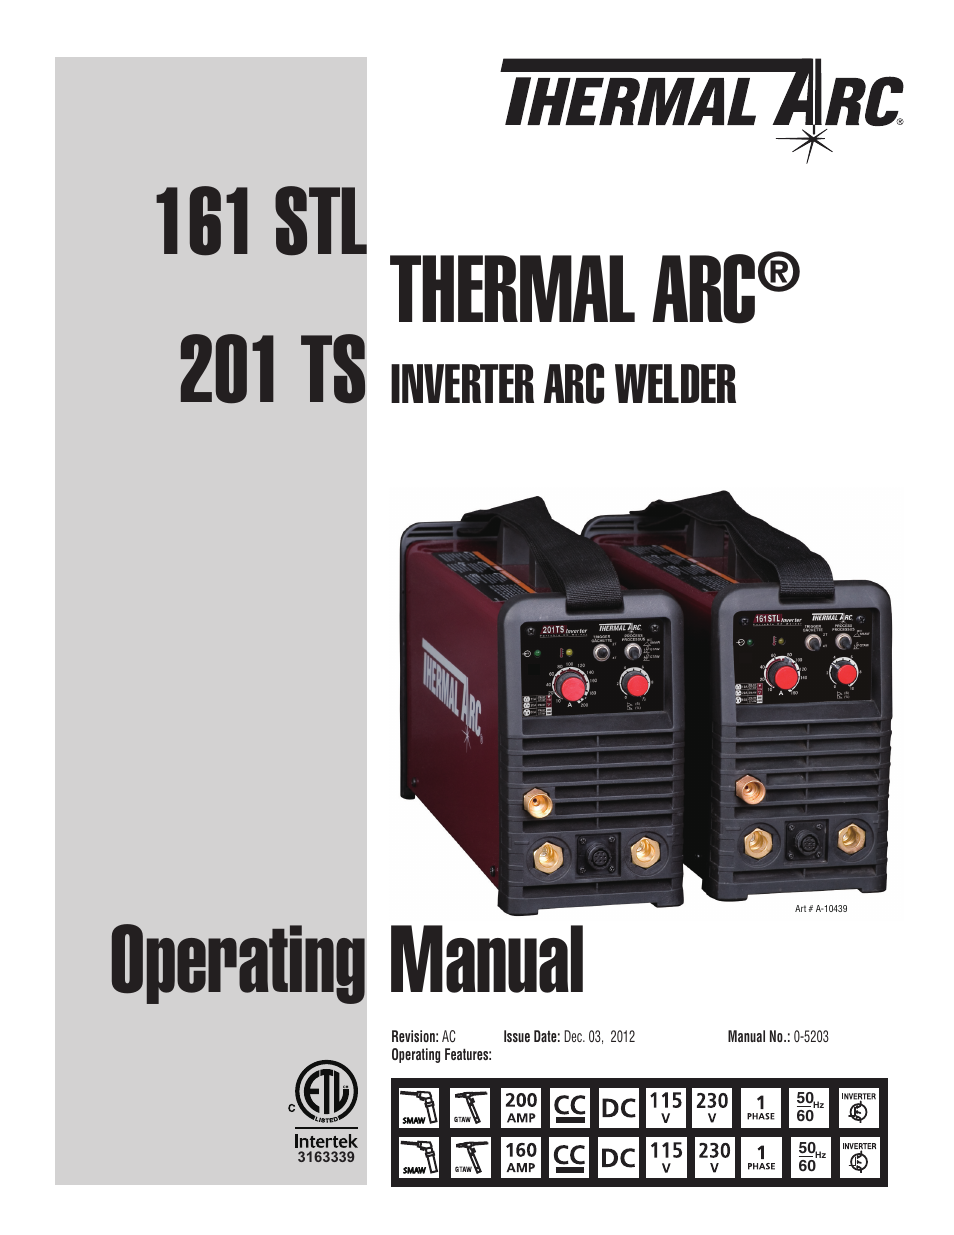 Tweco 201 ts Thermal Arc User Manual | 58 pages | Also for: 161 STL Thermal  Arc